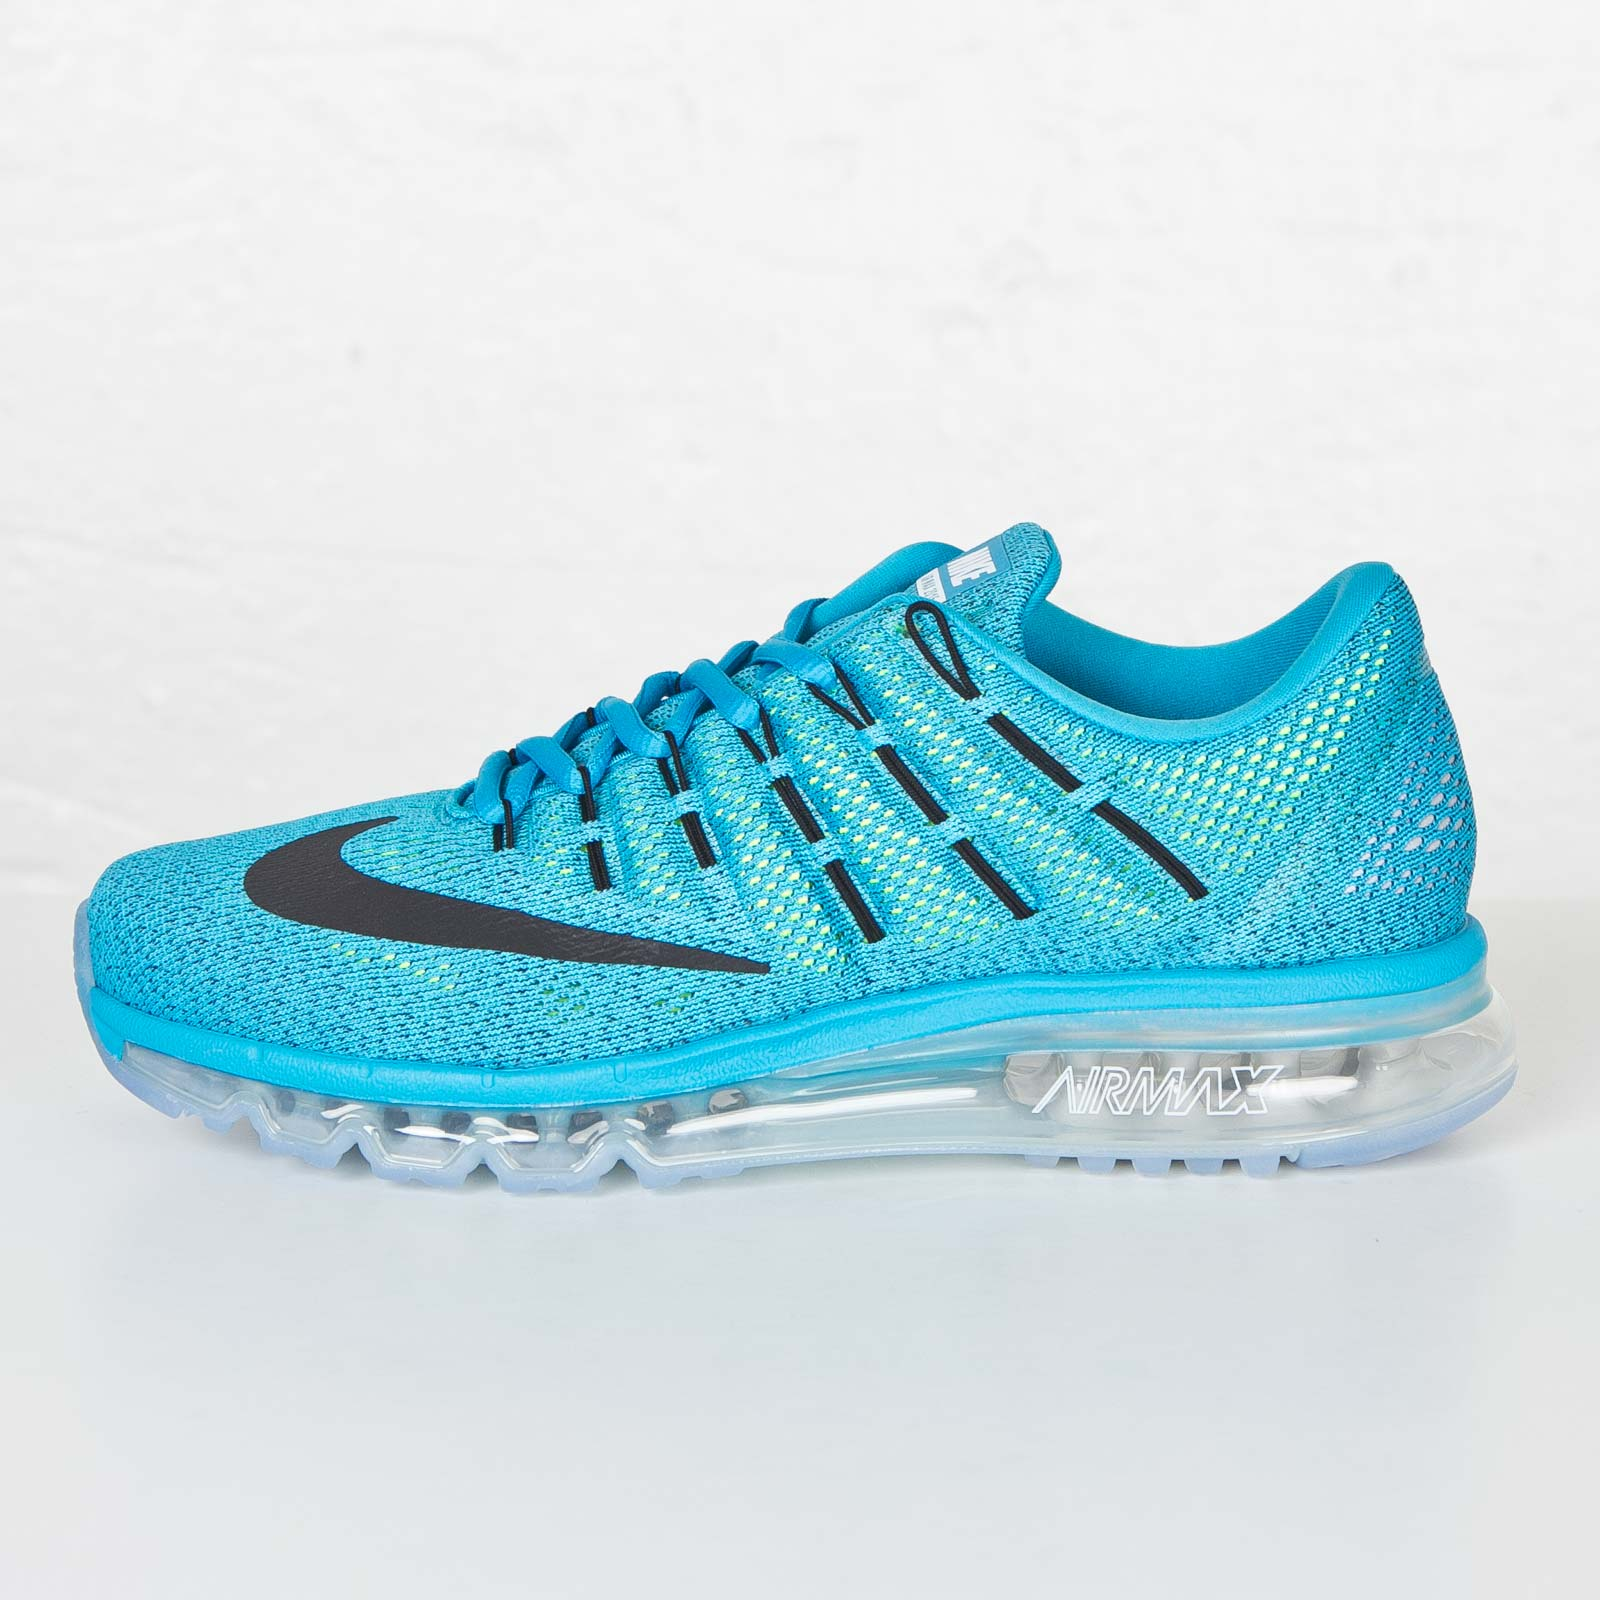 sports shoes a68af 797d0 Nike Air Max 2016 - 806771-400 - Sneakersnstuff   sneakers   streetwear  online since 1999